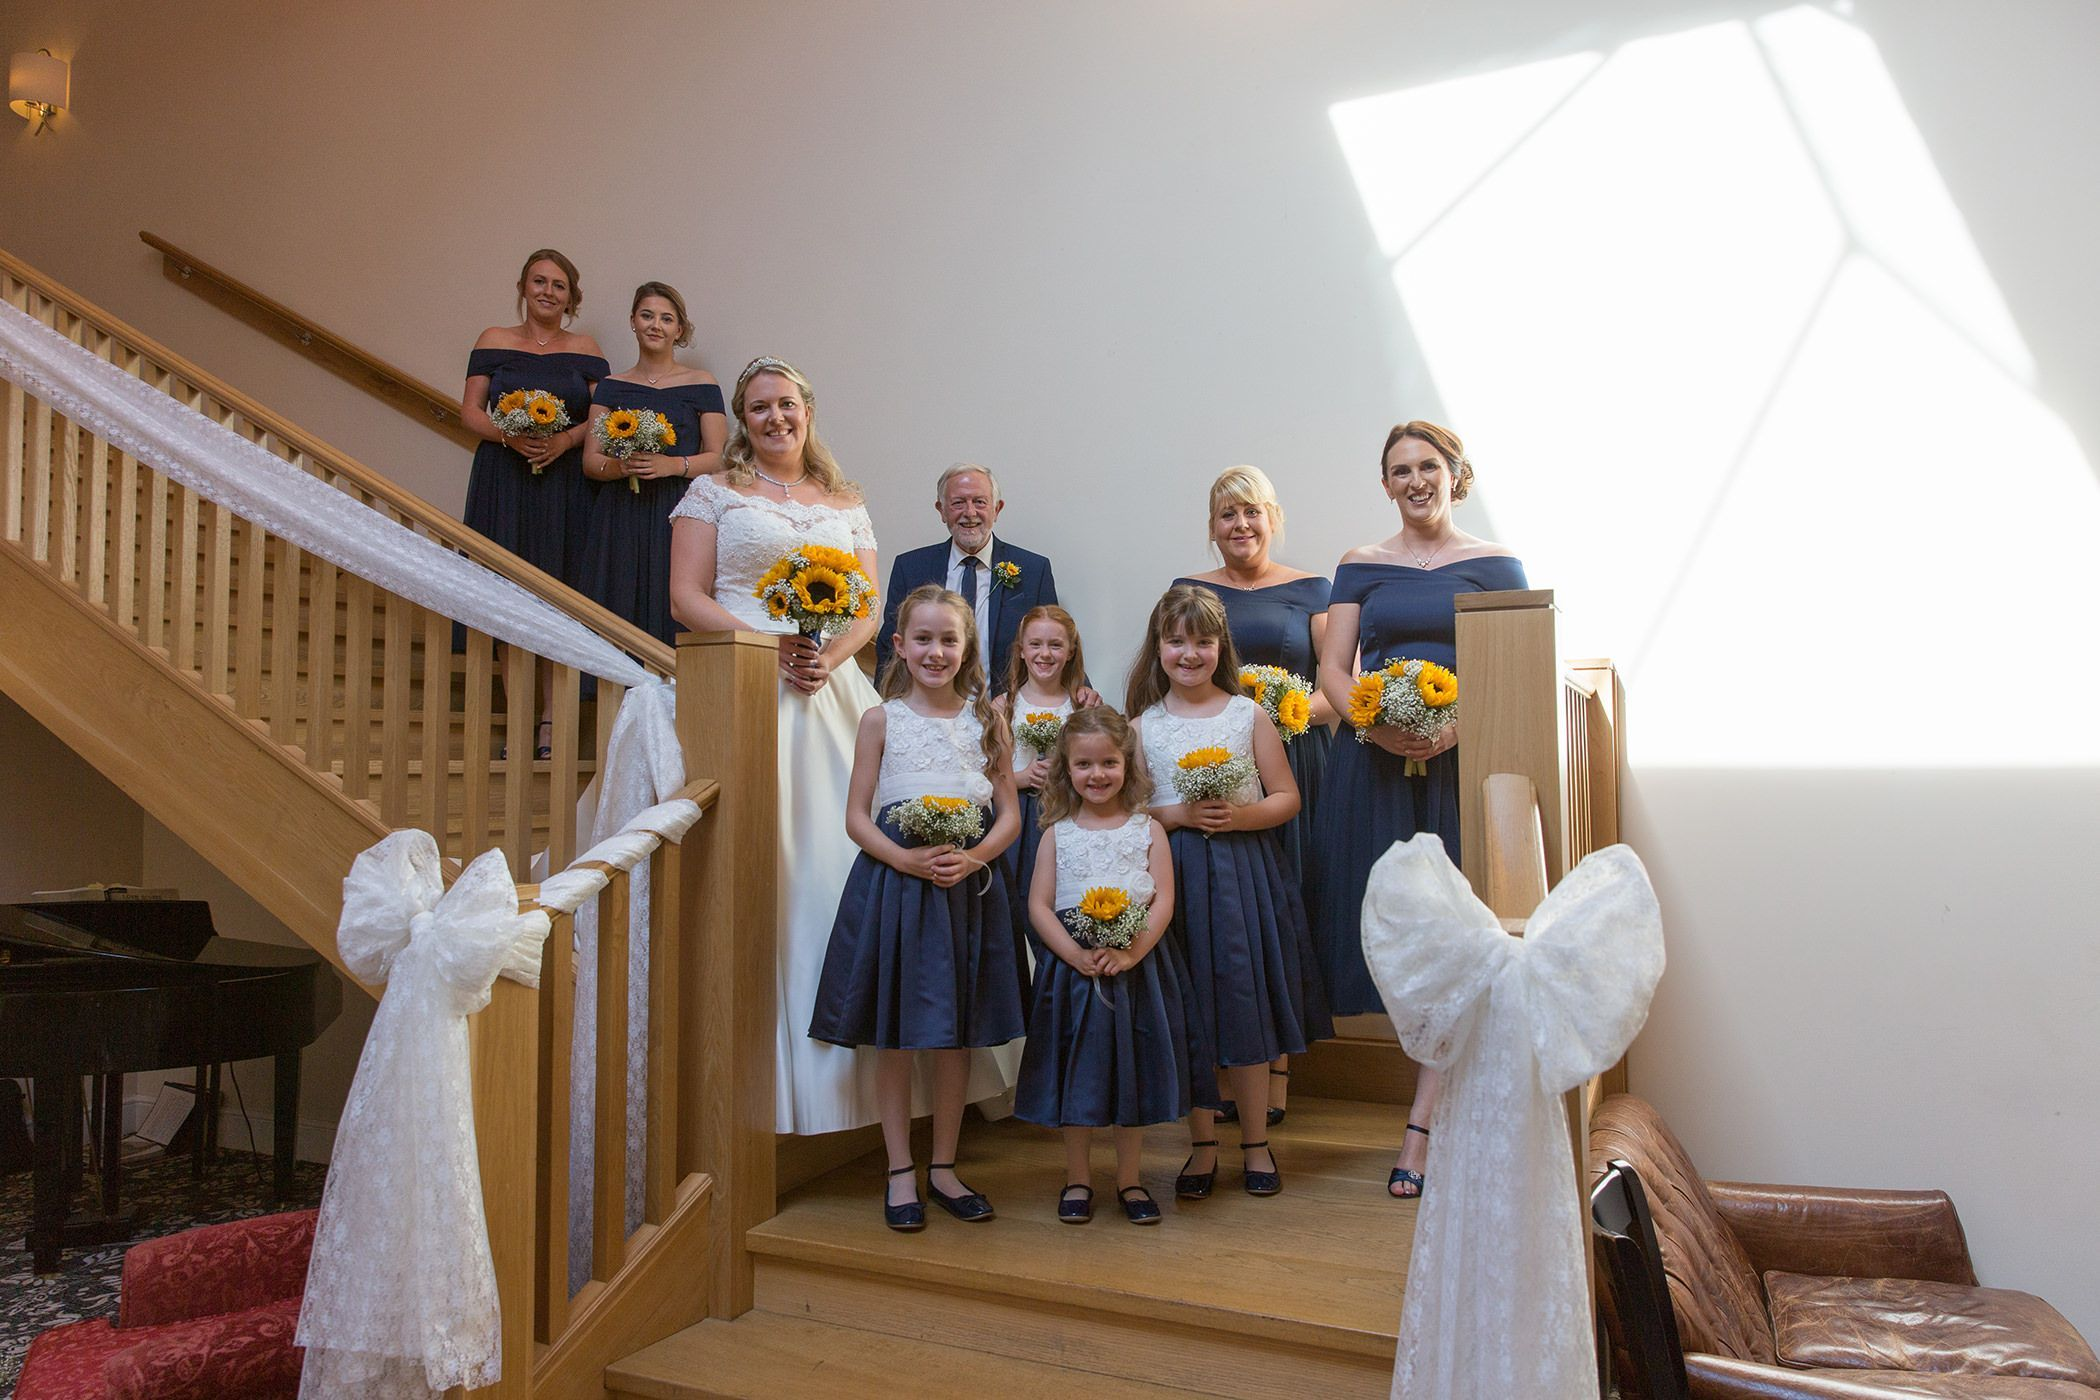 The villa wedding photographer